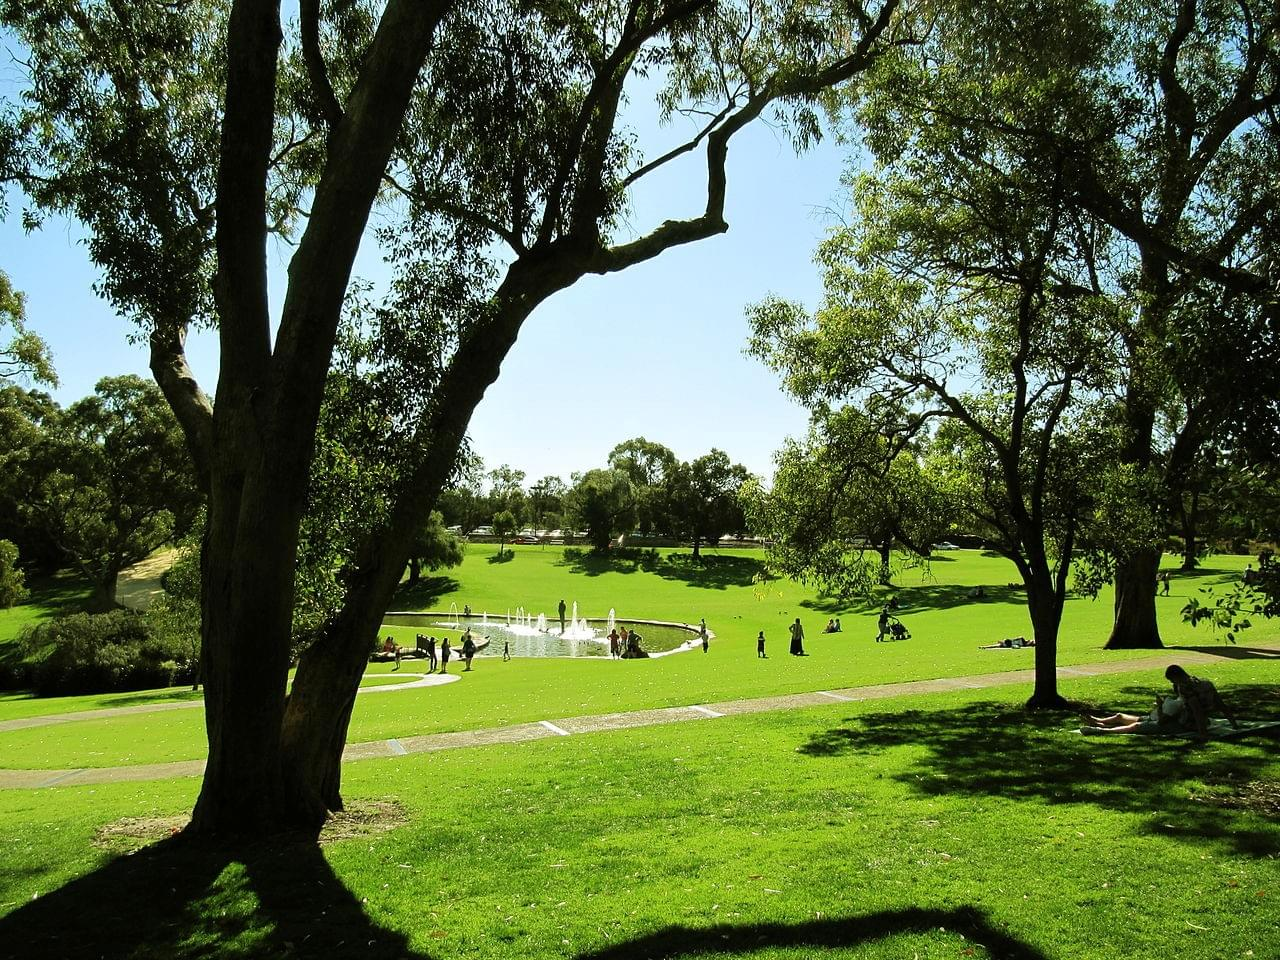 Kings Park et le jardin botanique - Kings Park and Botanical Gardens - Perth